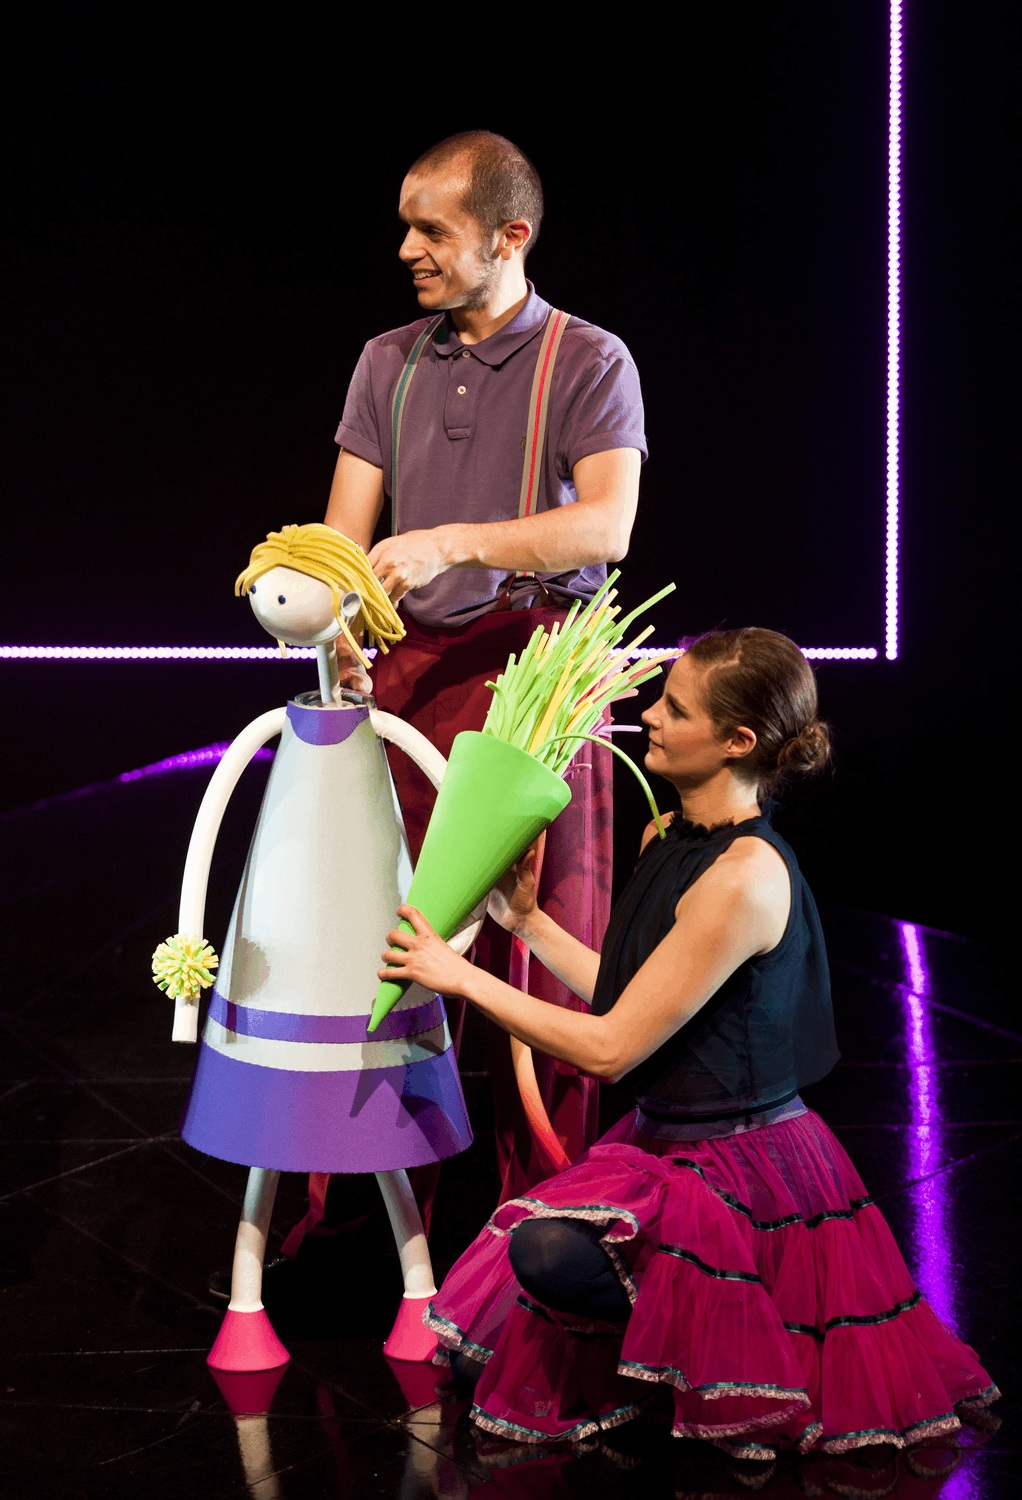 Two puppeteers control a puppet of a young girl holding a bunch of flowers